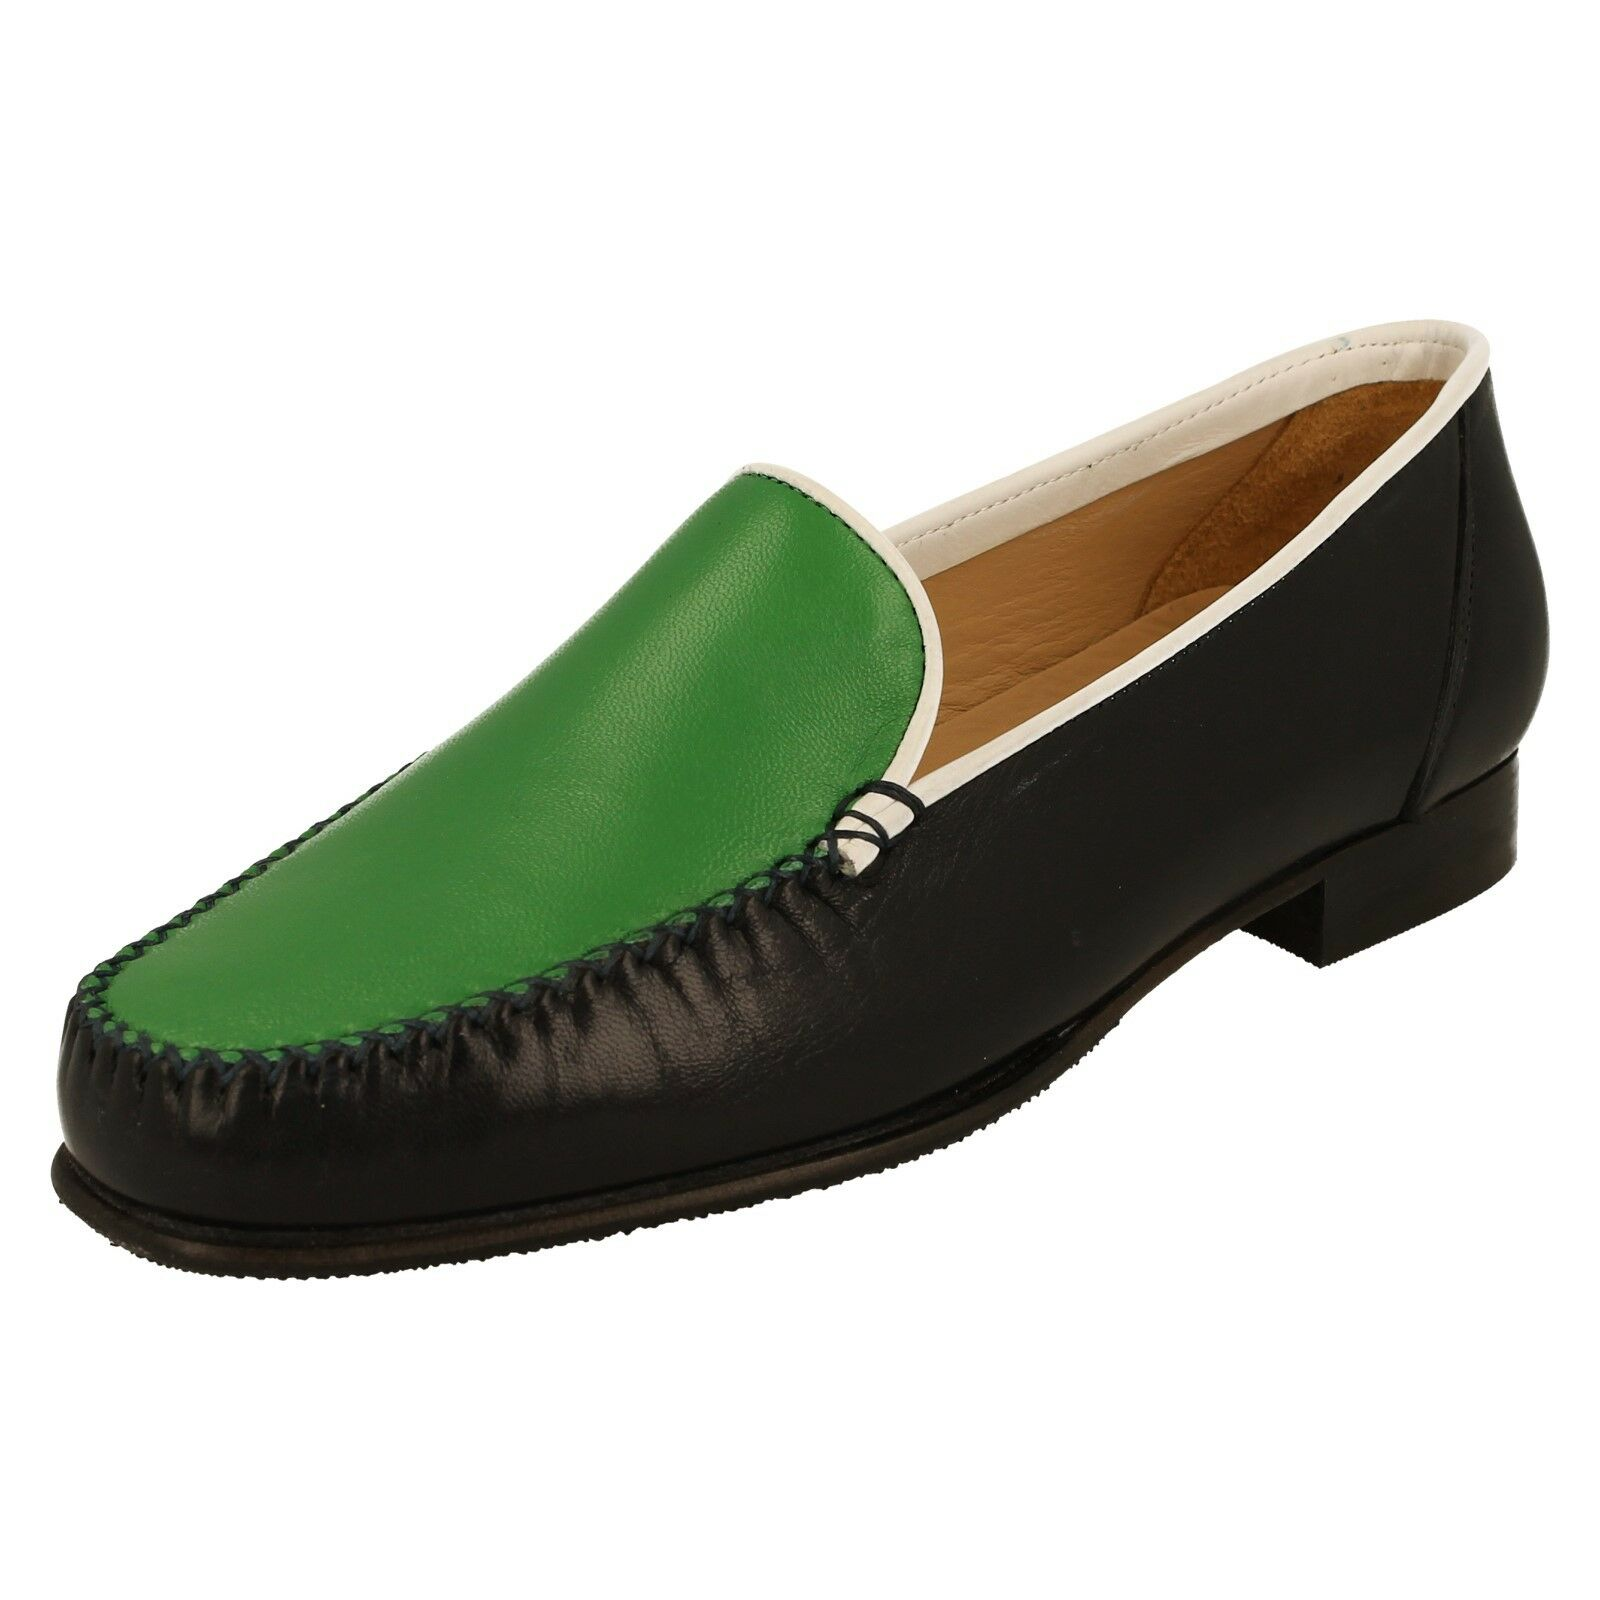 HB Ladies Shoes Style-201 Navy-Green-White Moccasin Slip On